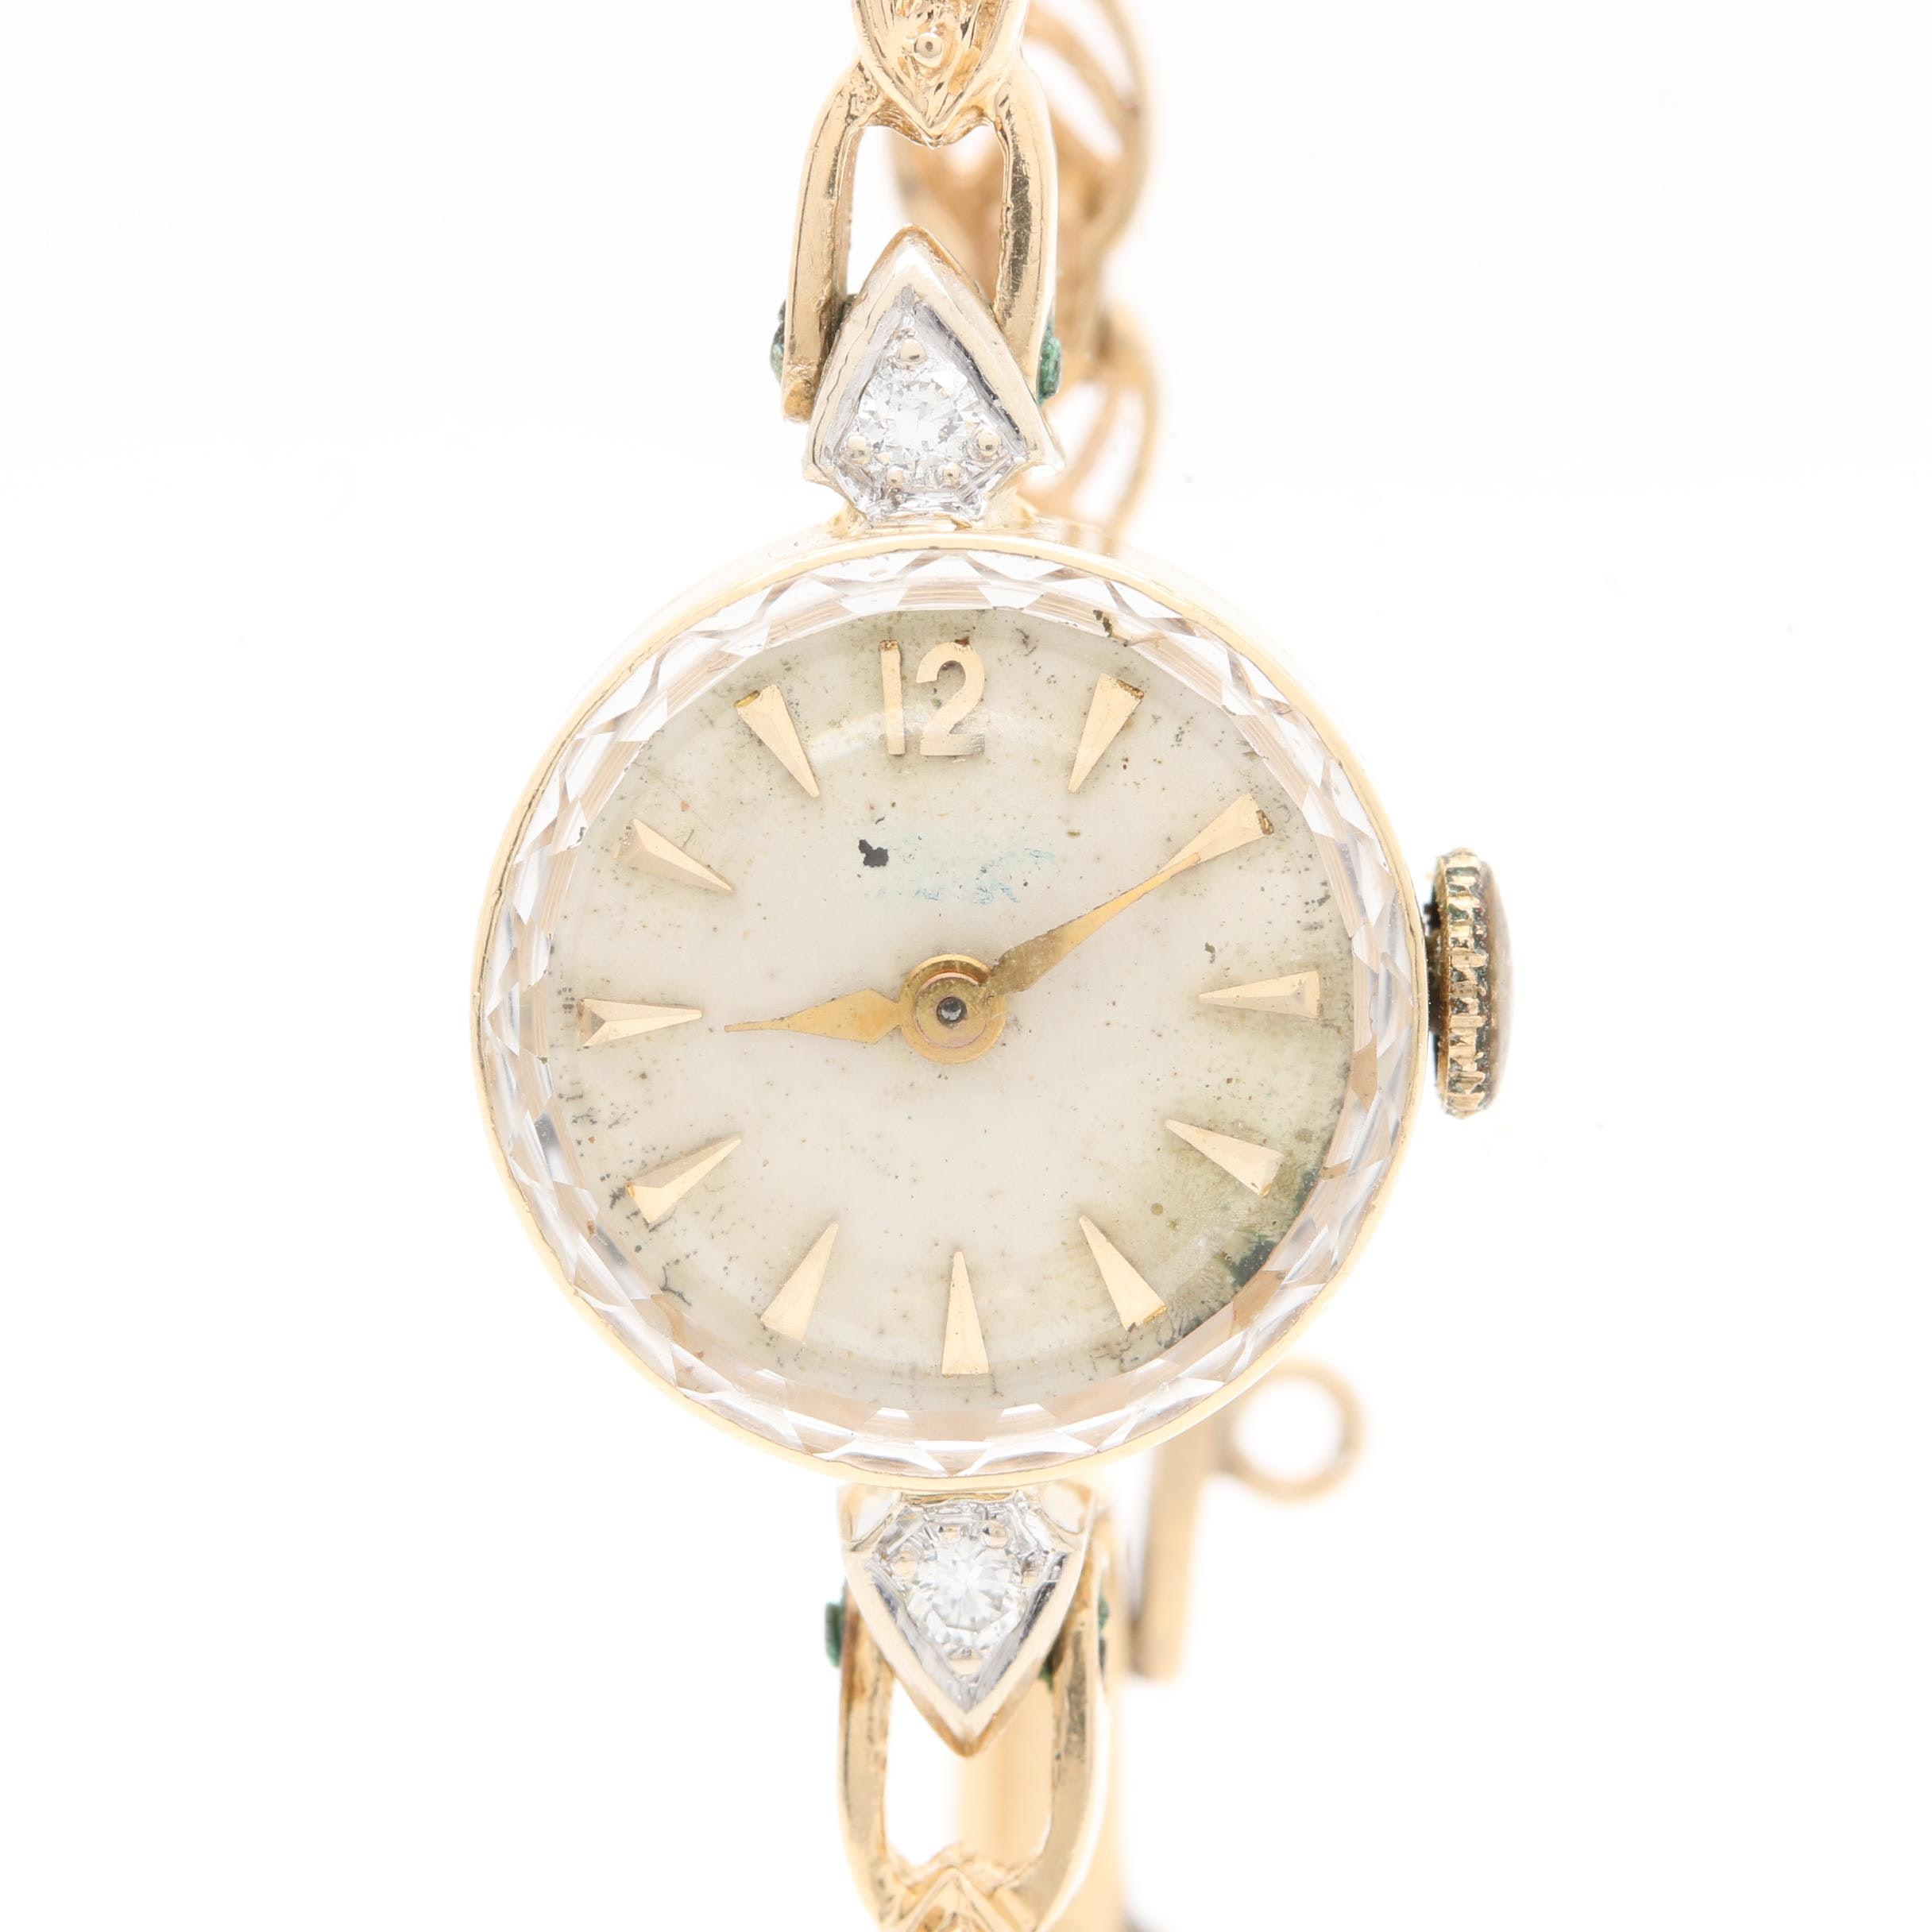 Girard-Perregaux 14K Yellow Gold Diamond Wristwatch